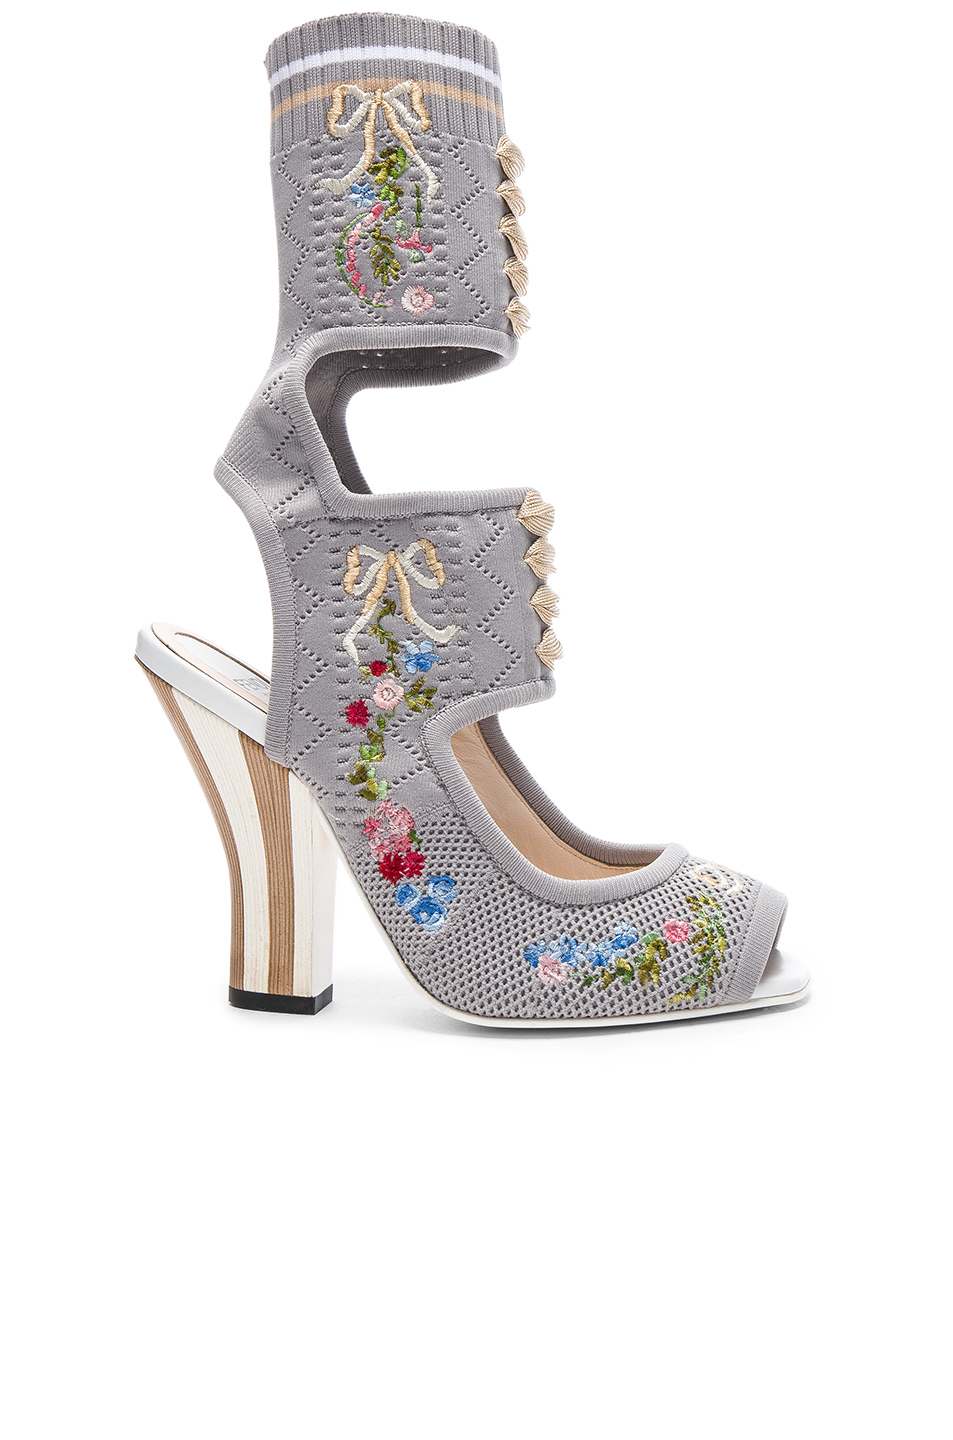 Fendi Cut Out Knit Sandals in Gray,Floral